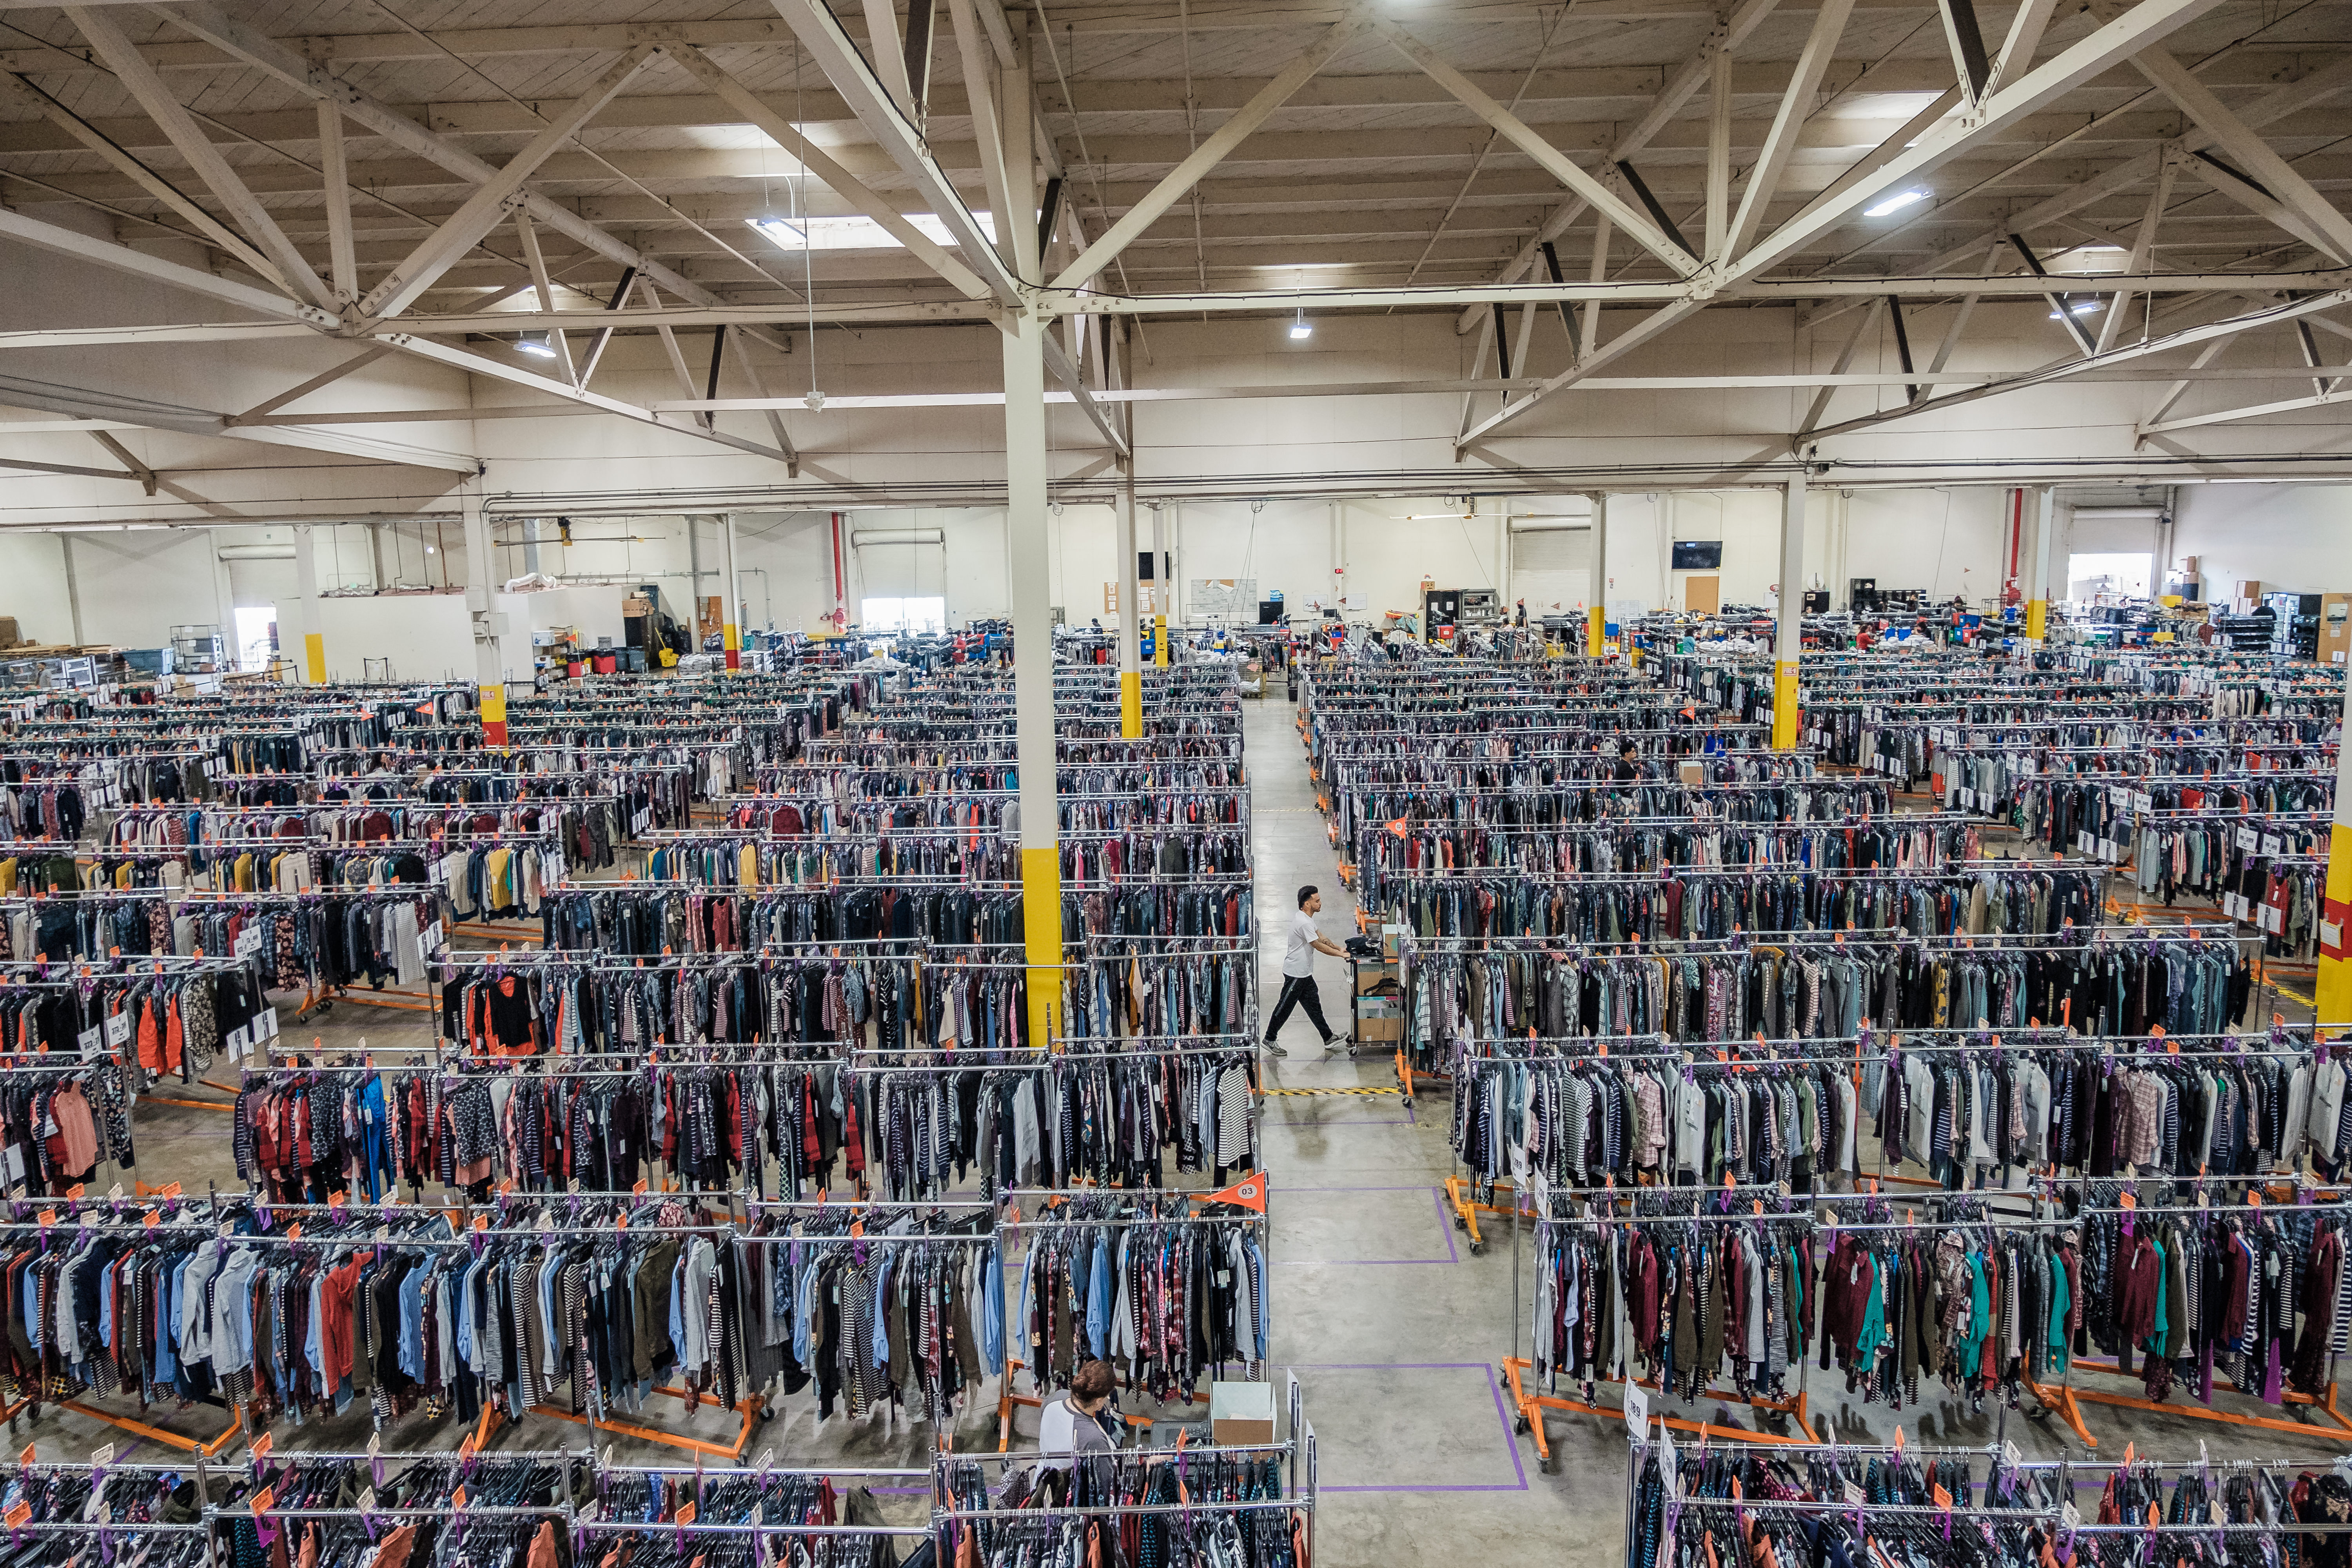 An employee can be seen pulling clothes at one Stitch Fix's warehouses, in South San Francisco